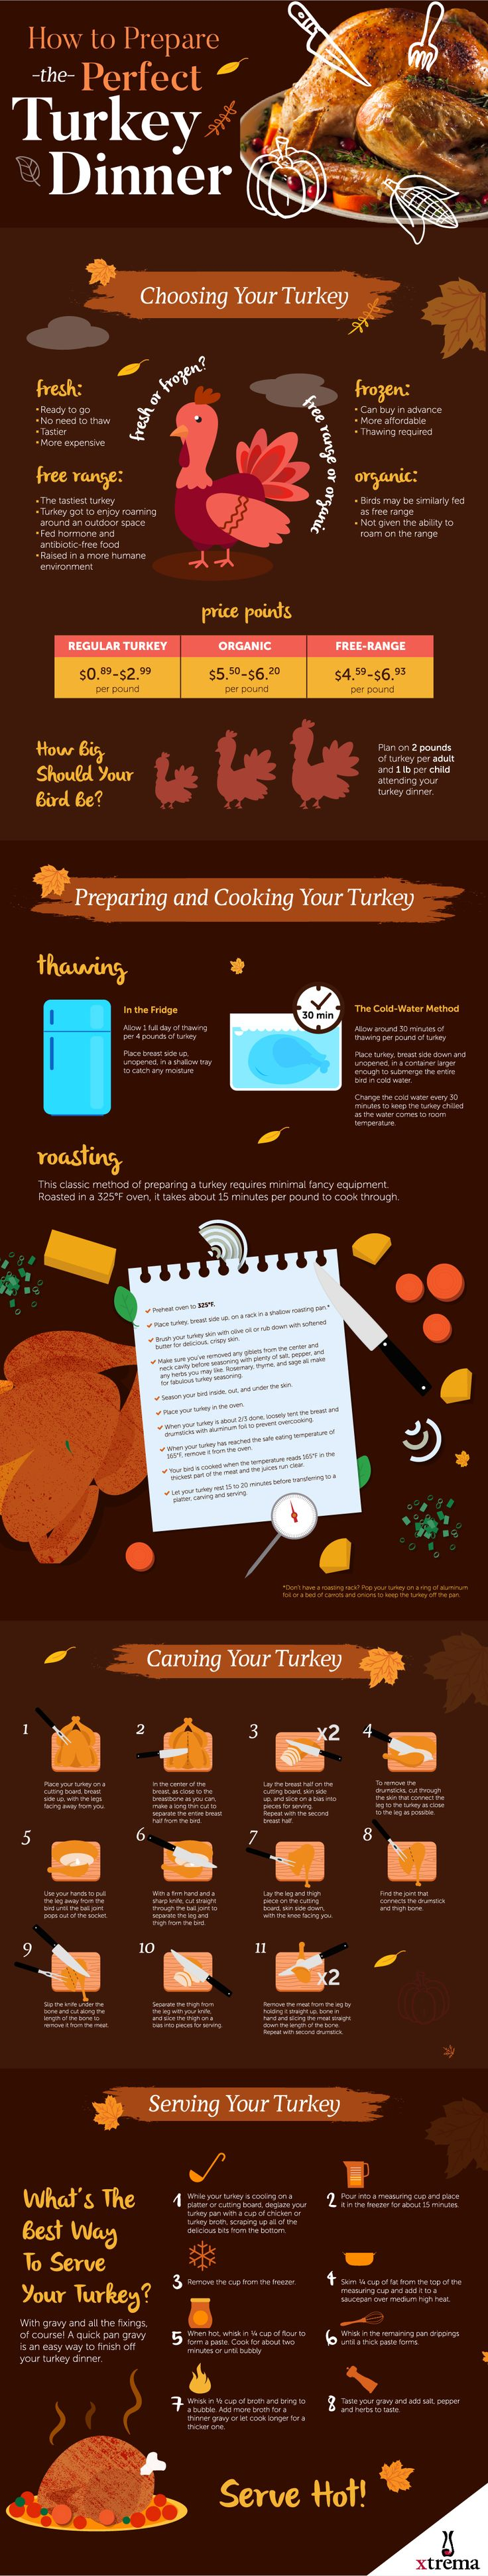 How to Prepare the Perfect Turkey Dinner Infographic